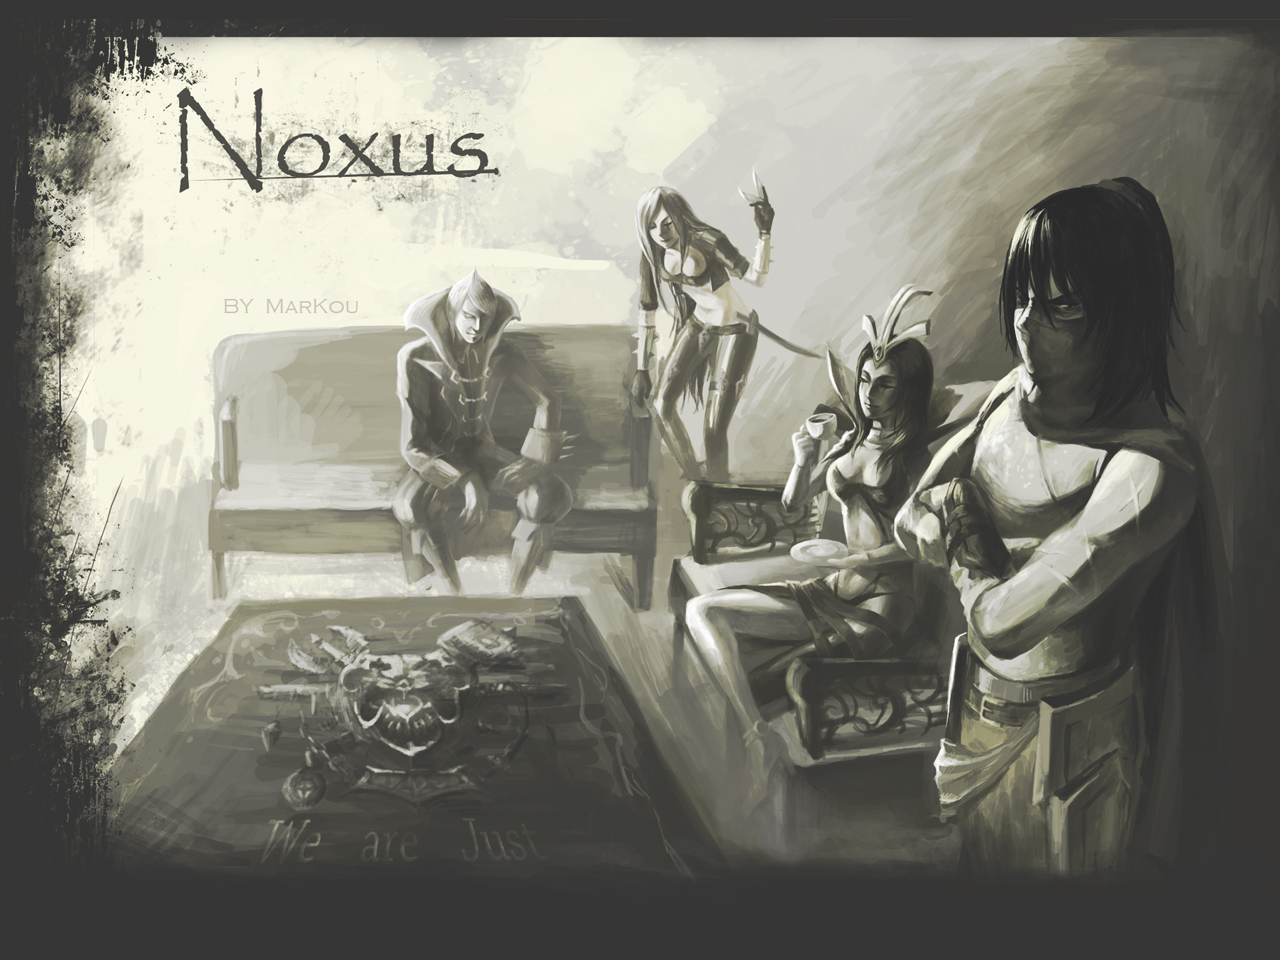 League_of_Legends - Noxus by markou000